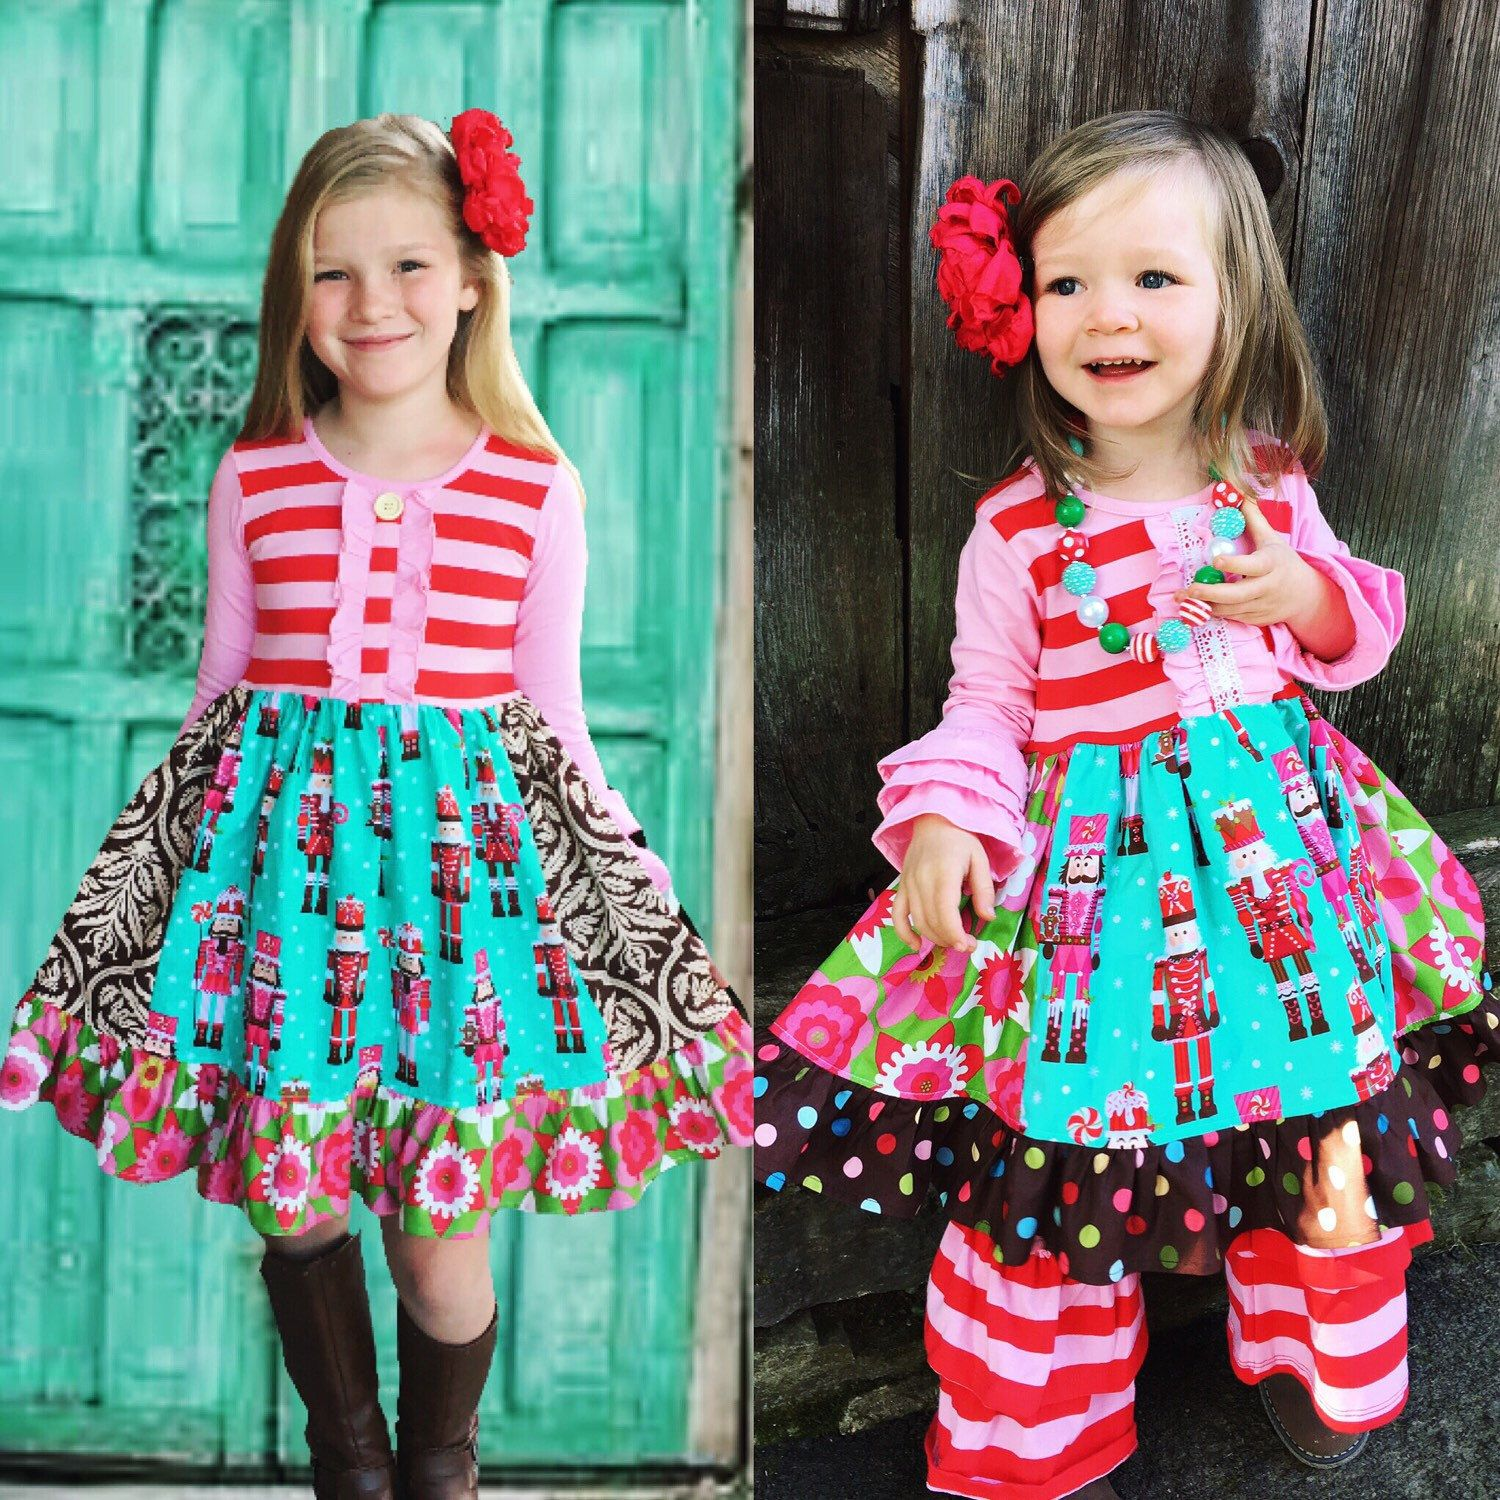 matching sister dresses its what holiday dream pictures are made of